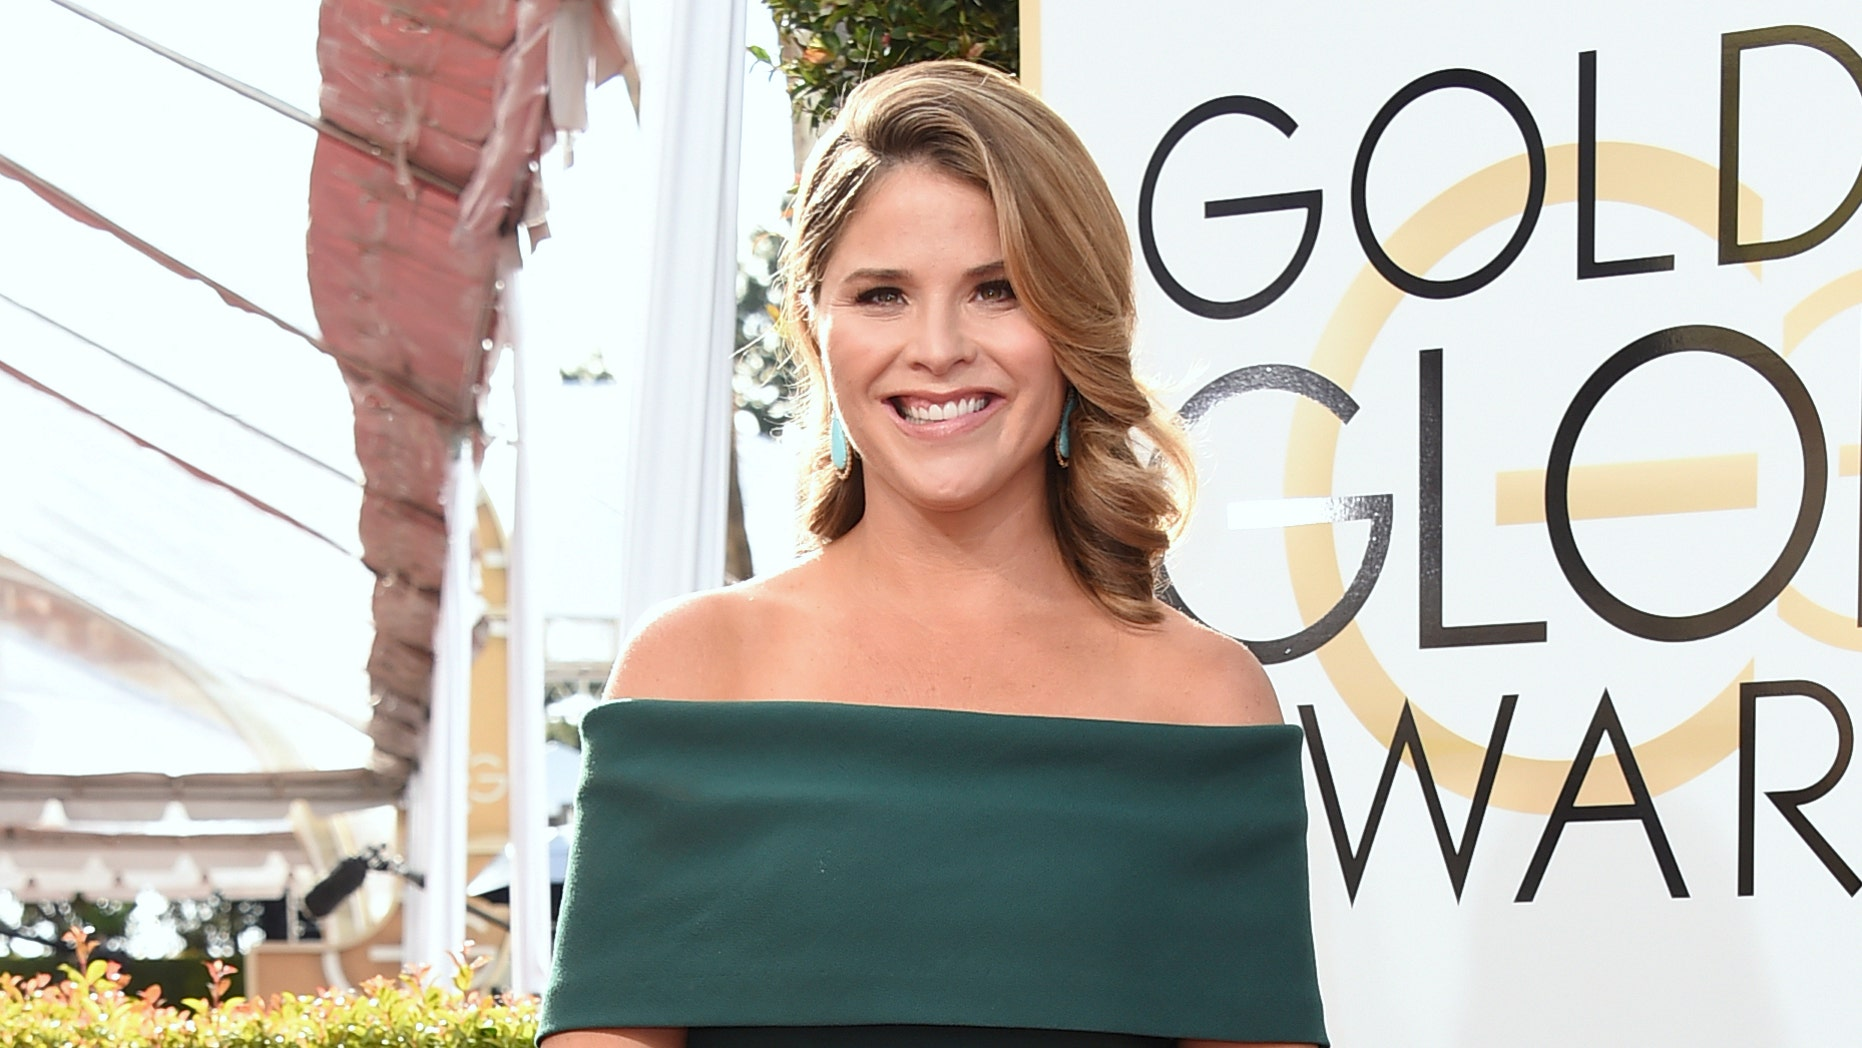 Jenna Bush Hager arrives at the 74th annual Golden Globe Awards at the Beverly Hilton Hotel in Beverly Hills, Calif.